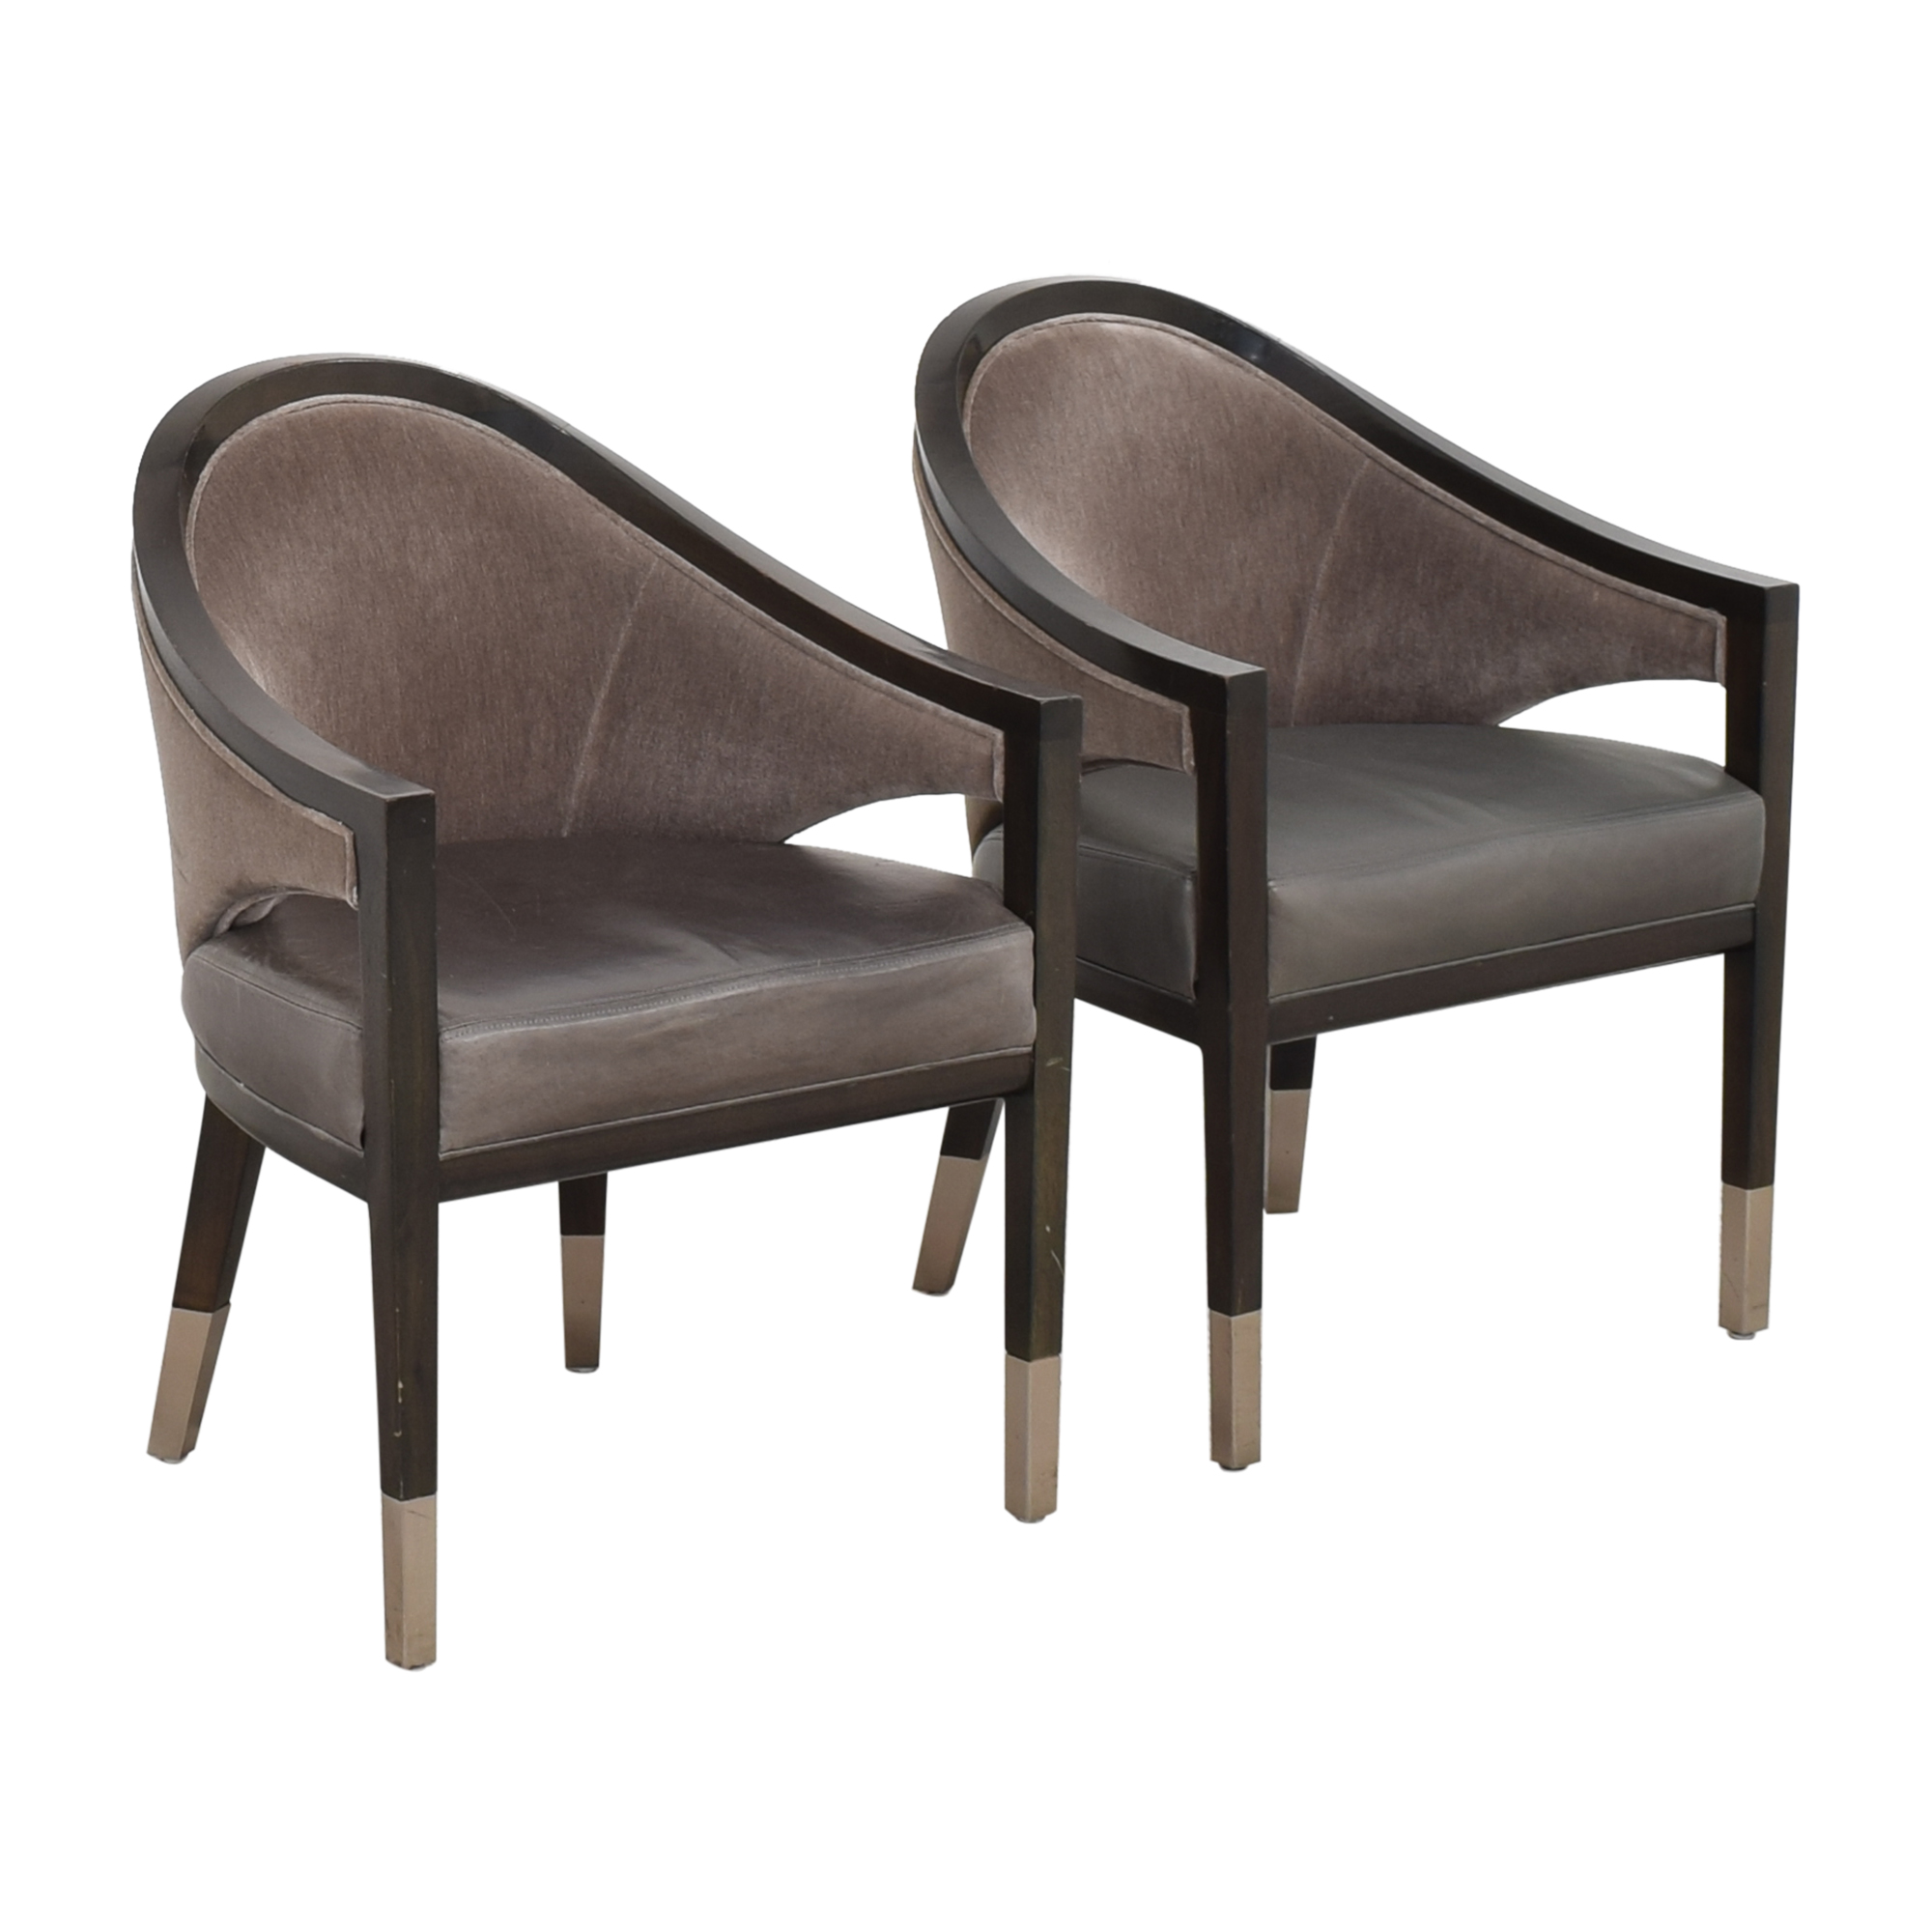 Allied Works Eleven Madison Park Dining Room Chairs sale